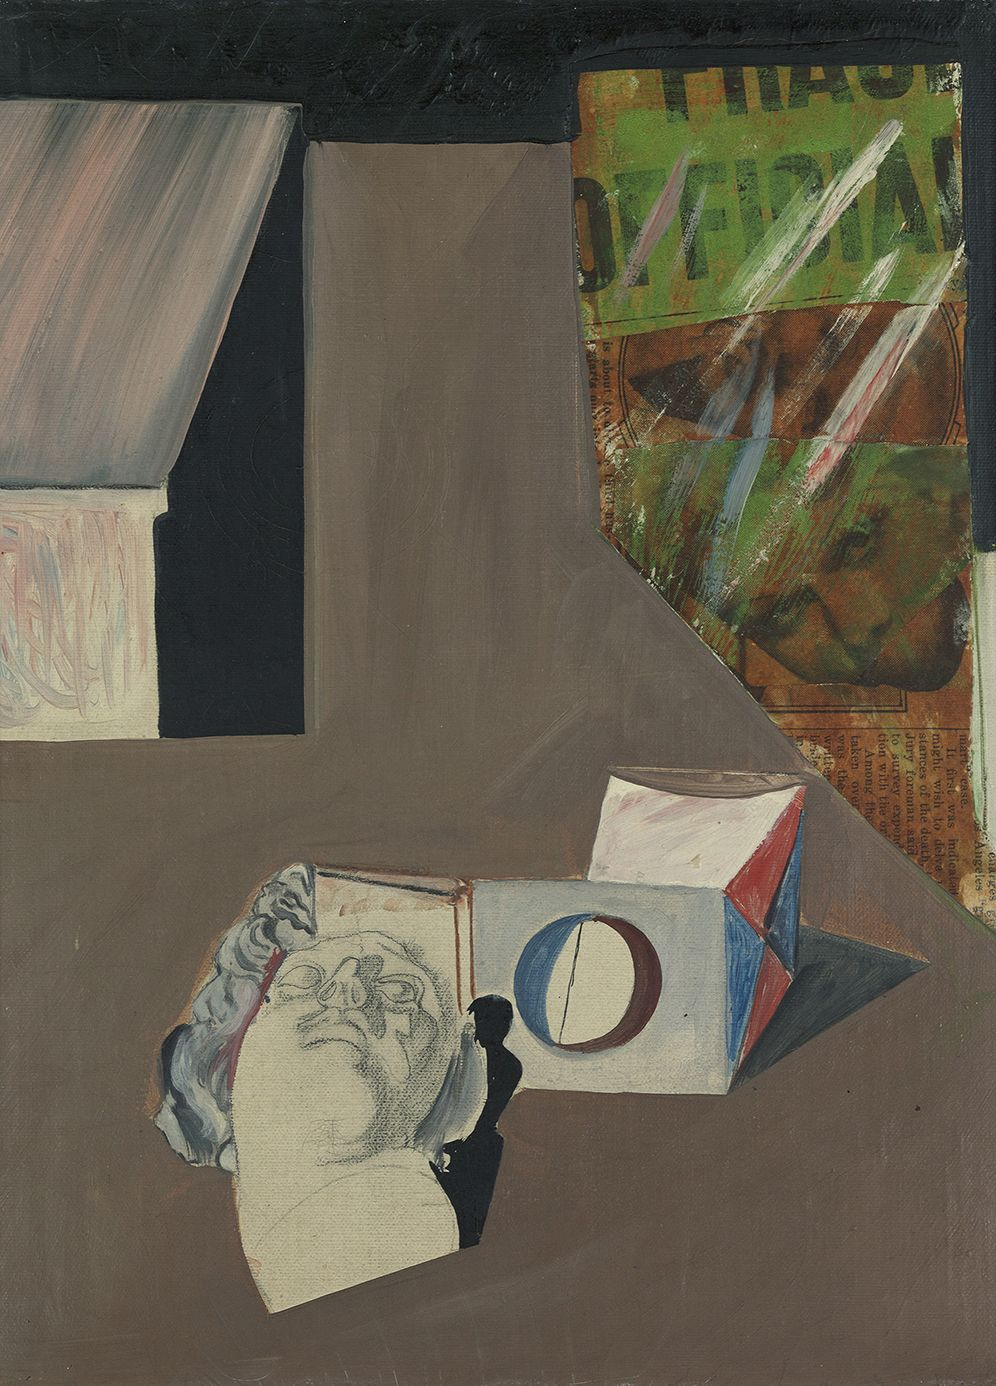 Ethel Schwabacher (1903-1984), Surrealist Composition, 1935